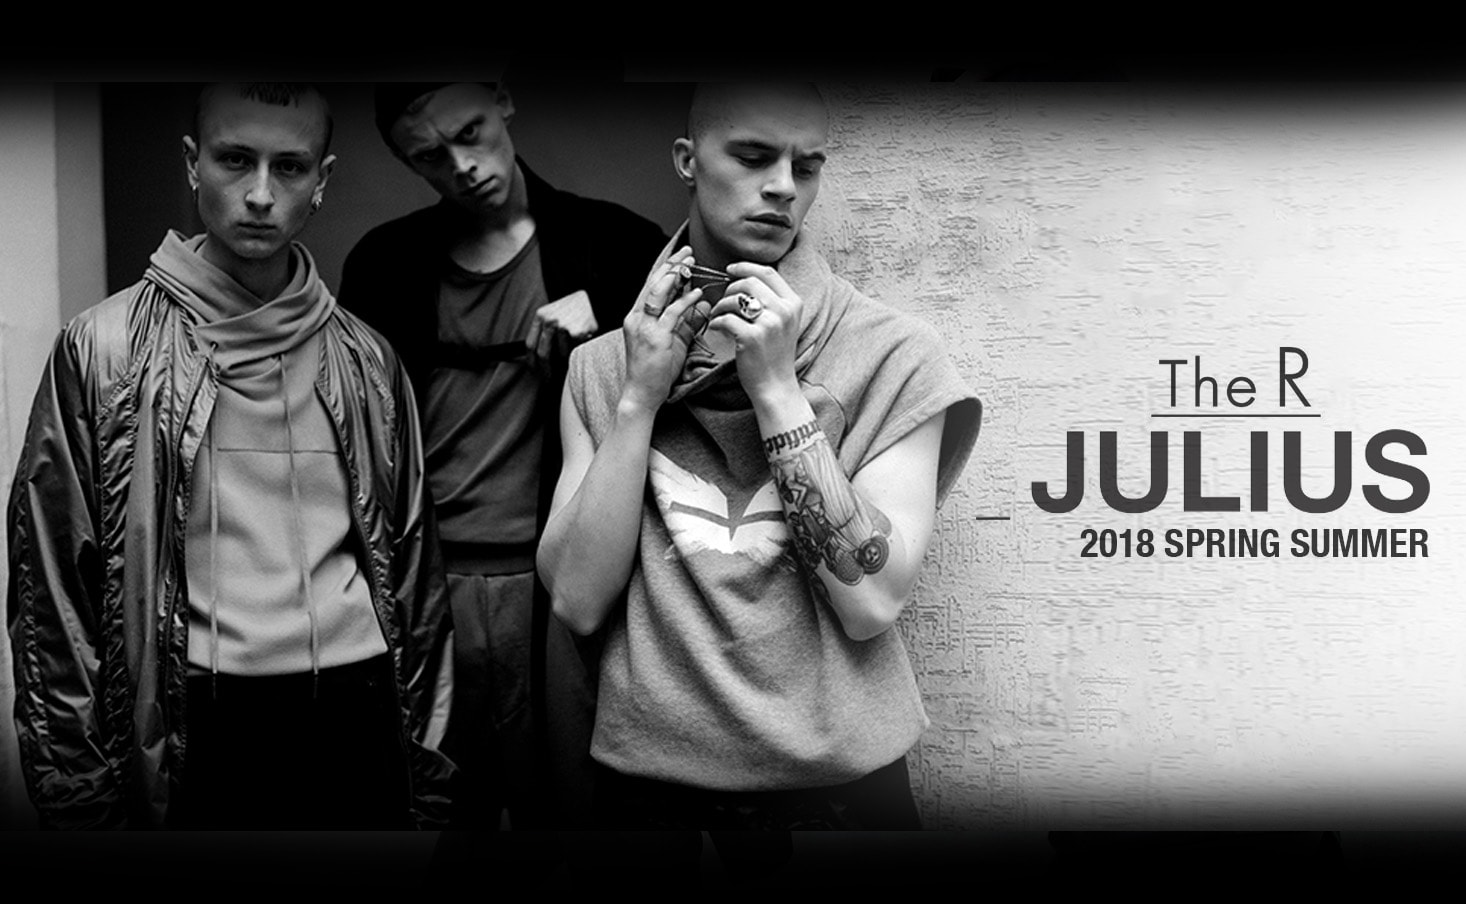 julius 2018 Spring Summer Collection